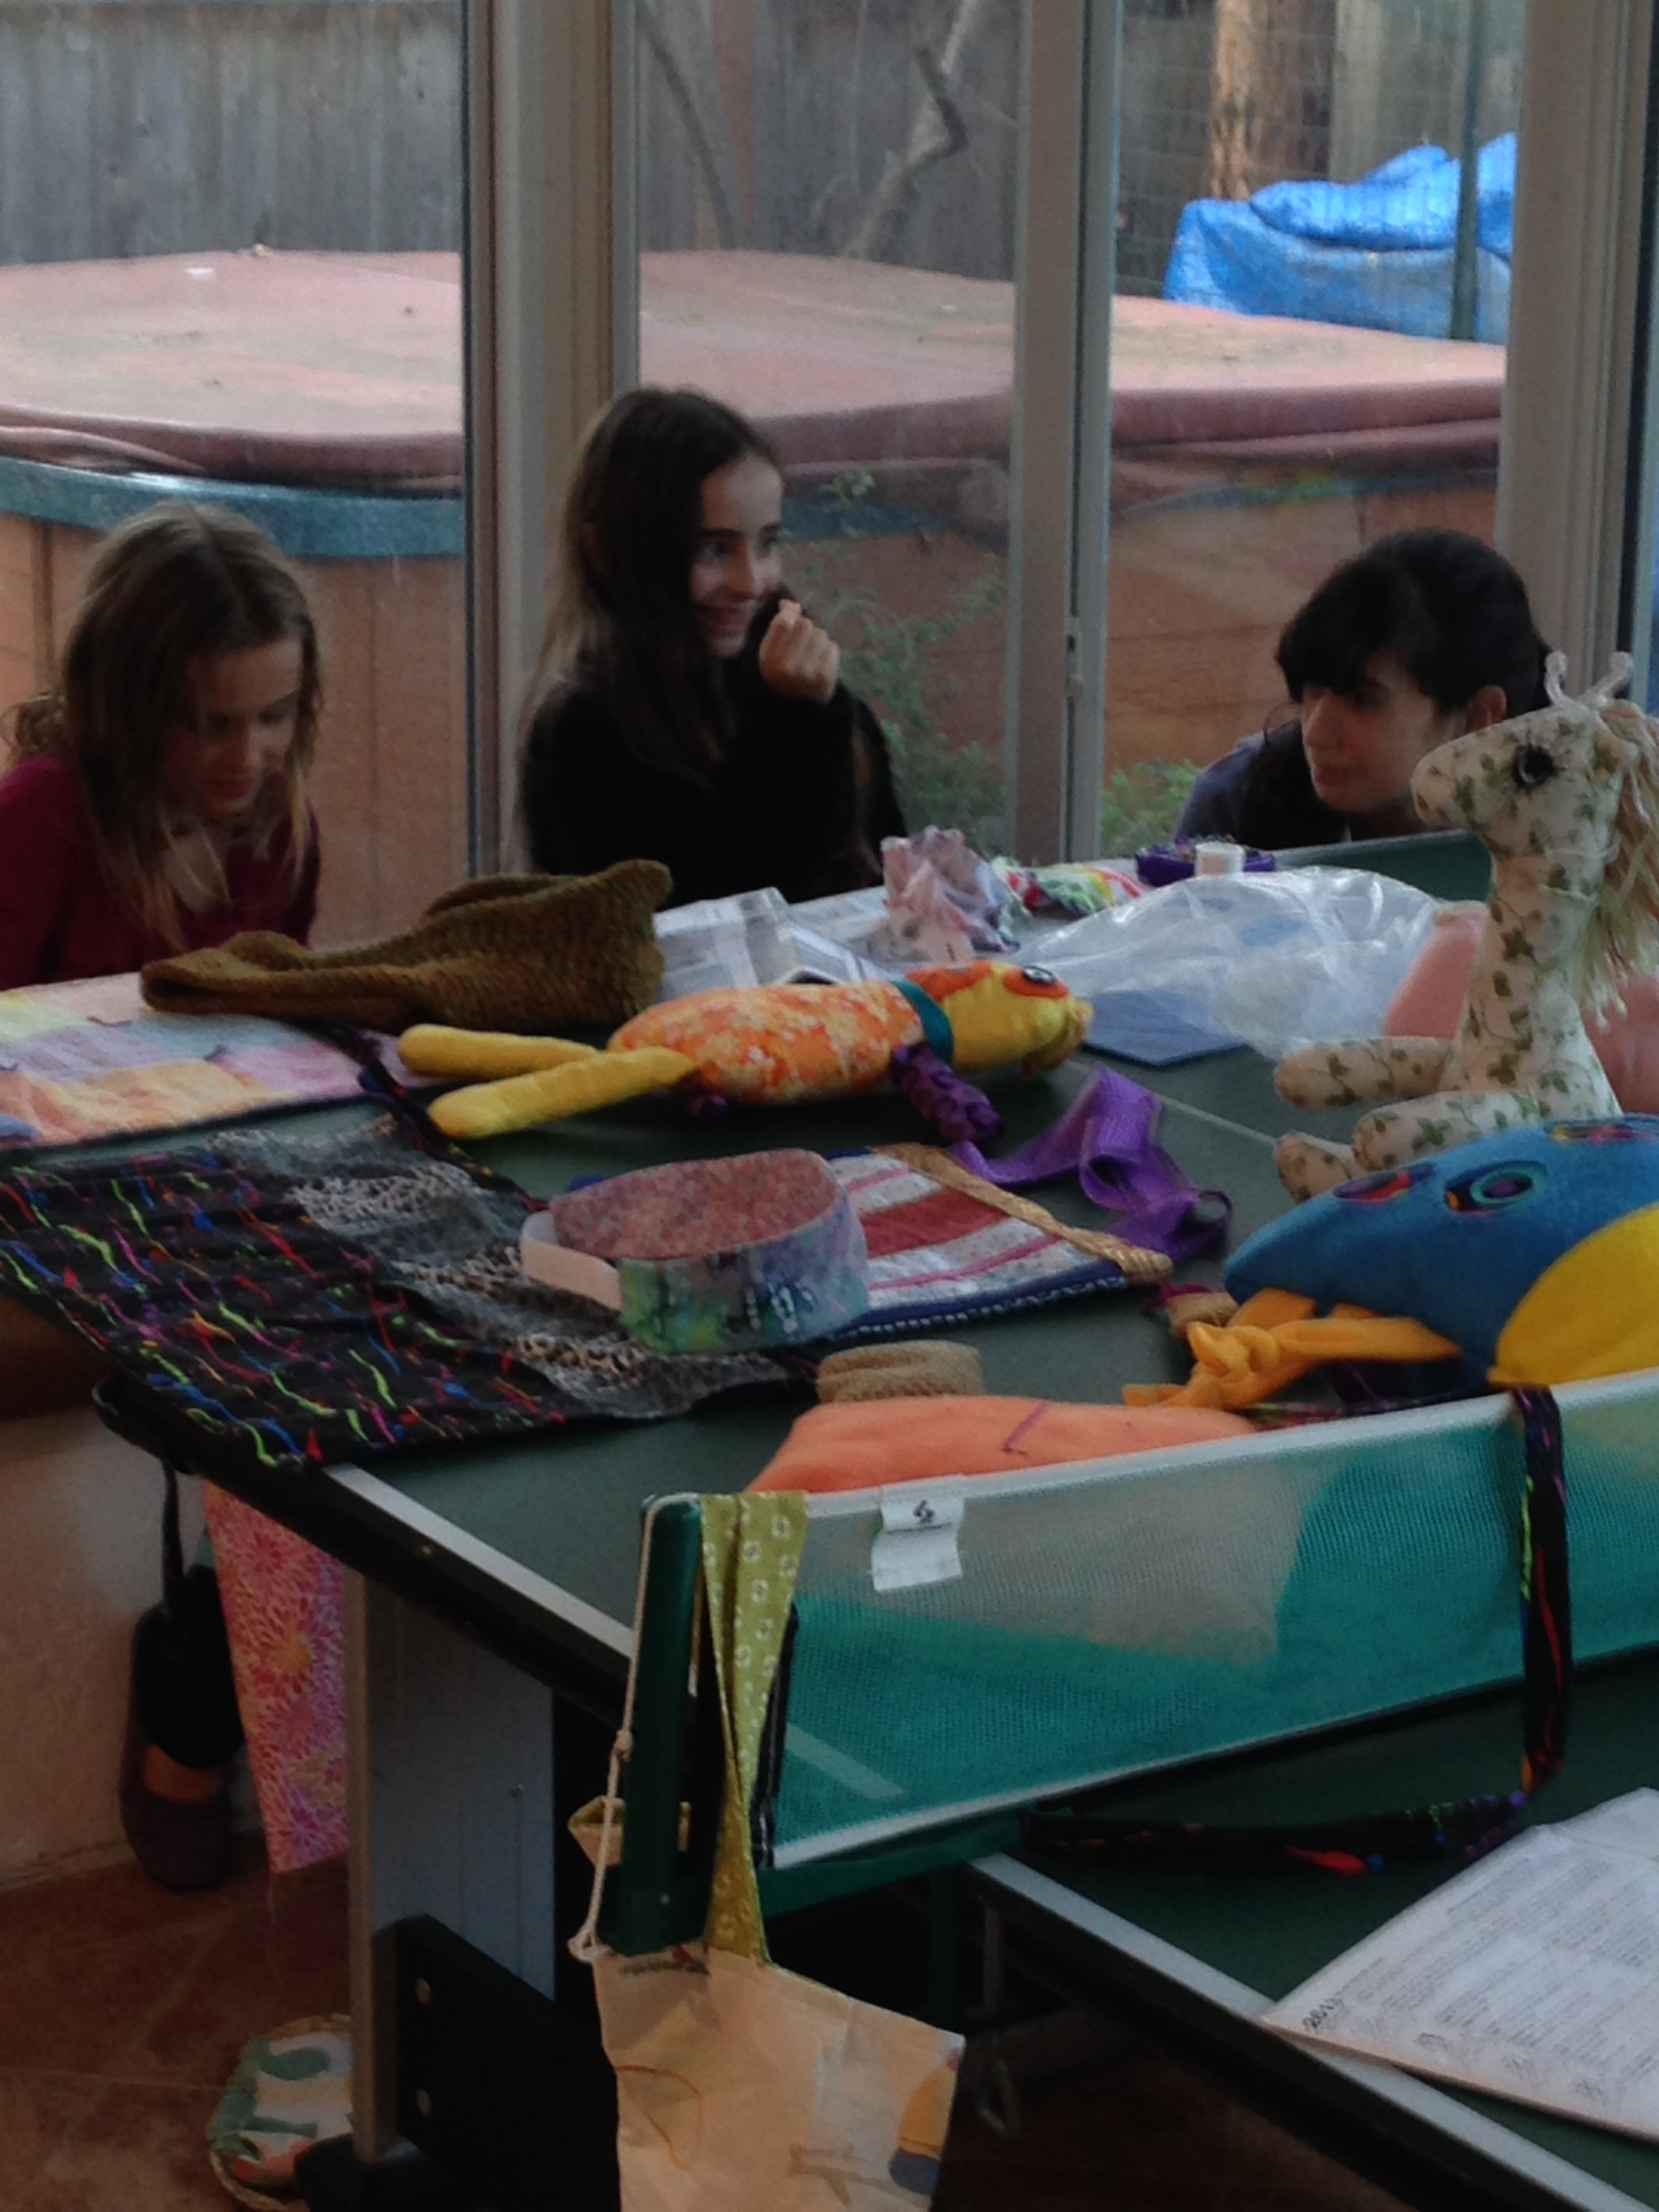 Another sewing and chatting group.